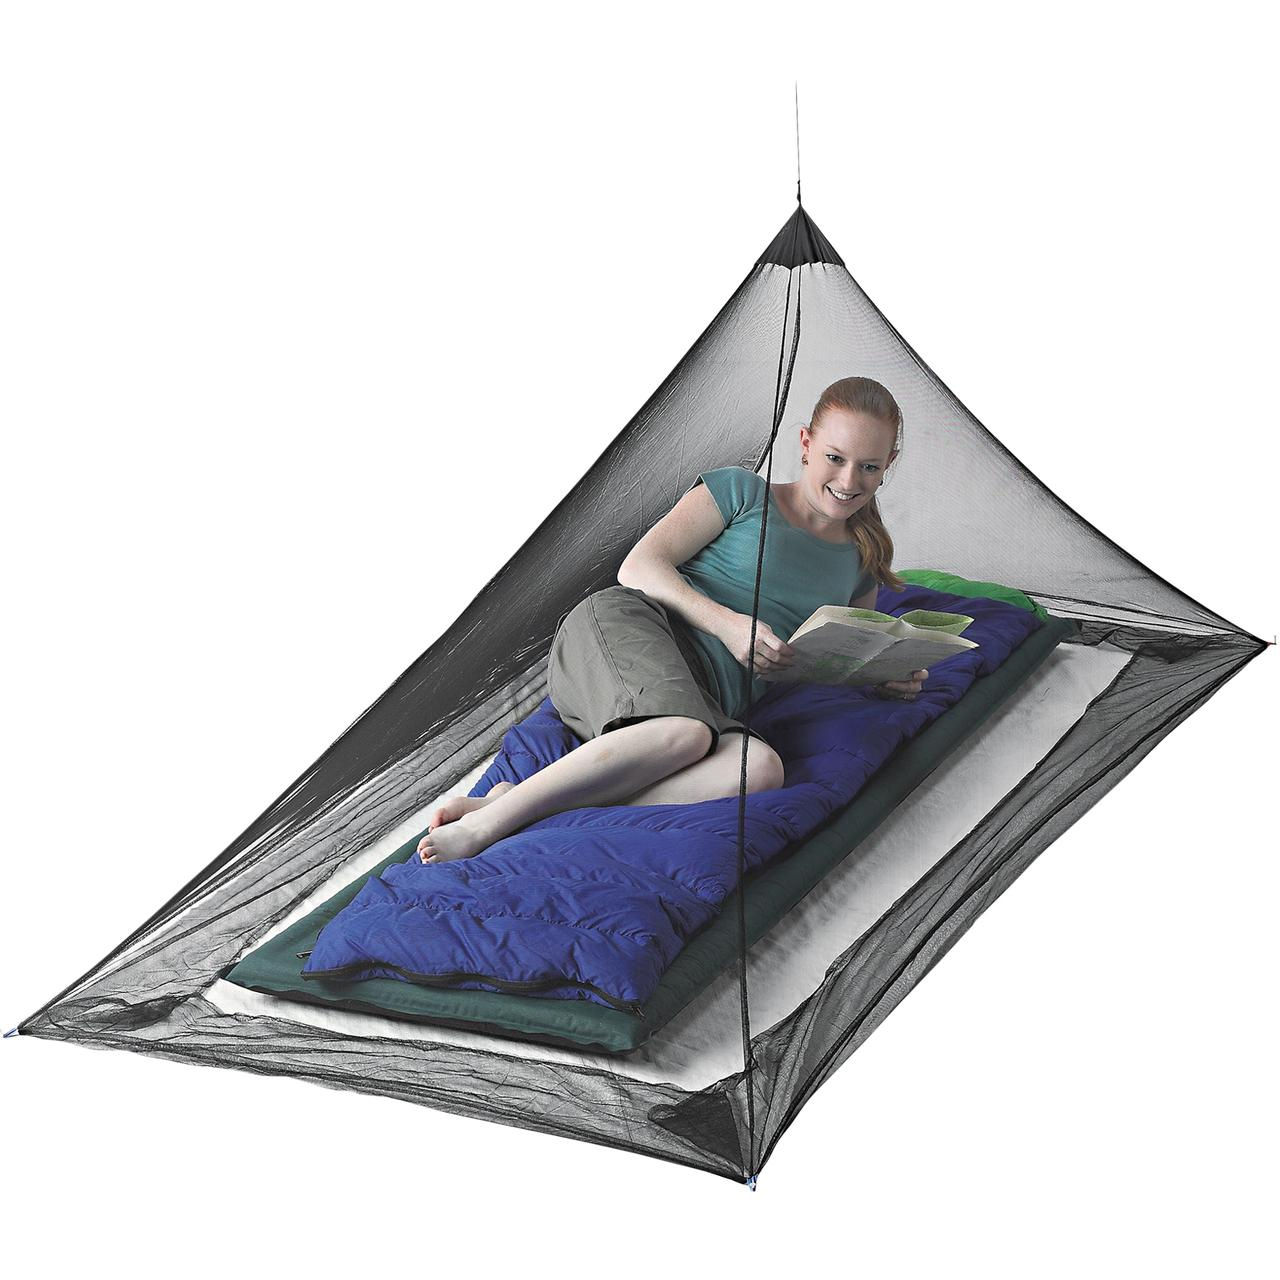 Mosquito Pyramid Net Single Shelter With Insect Shield